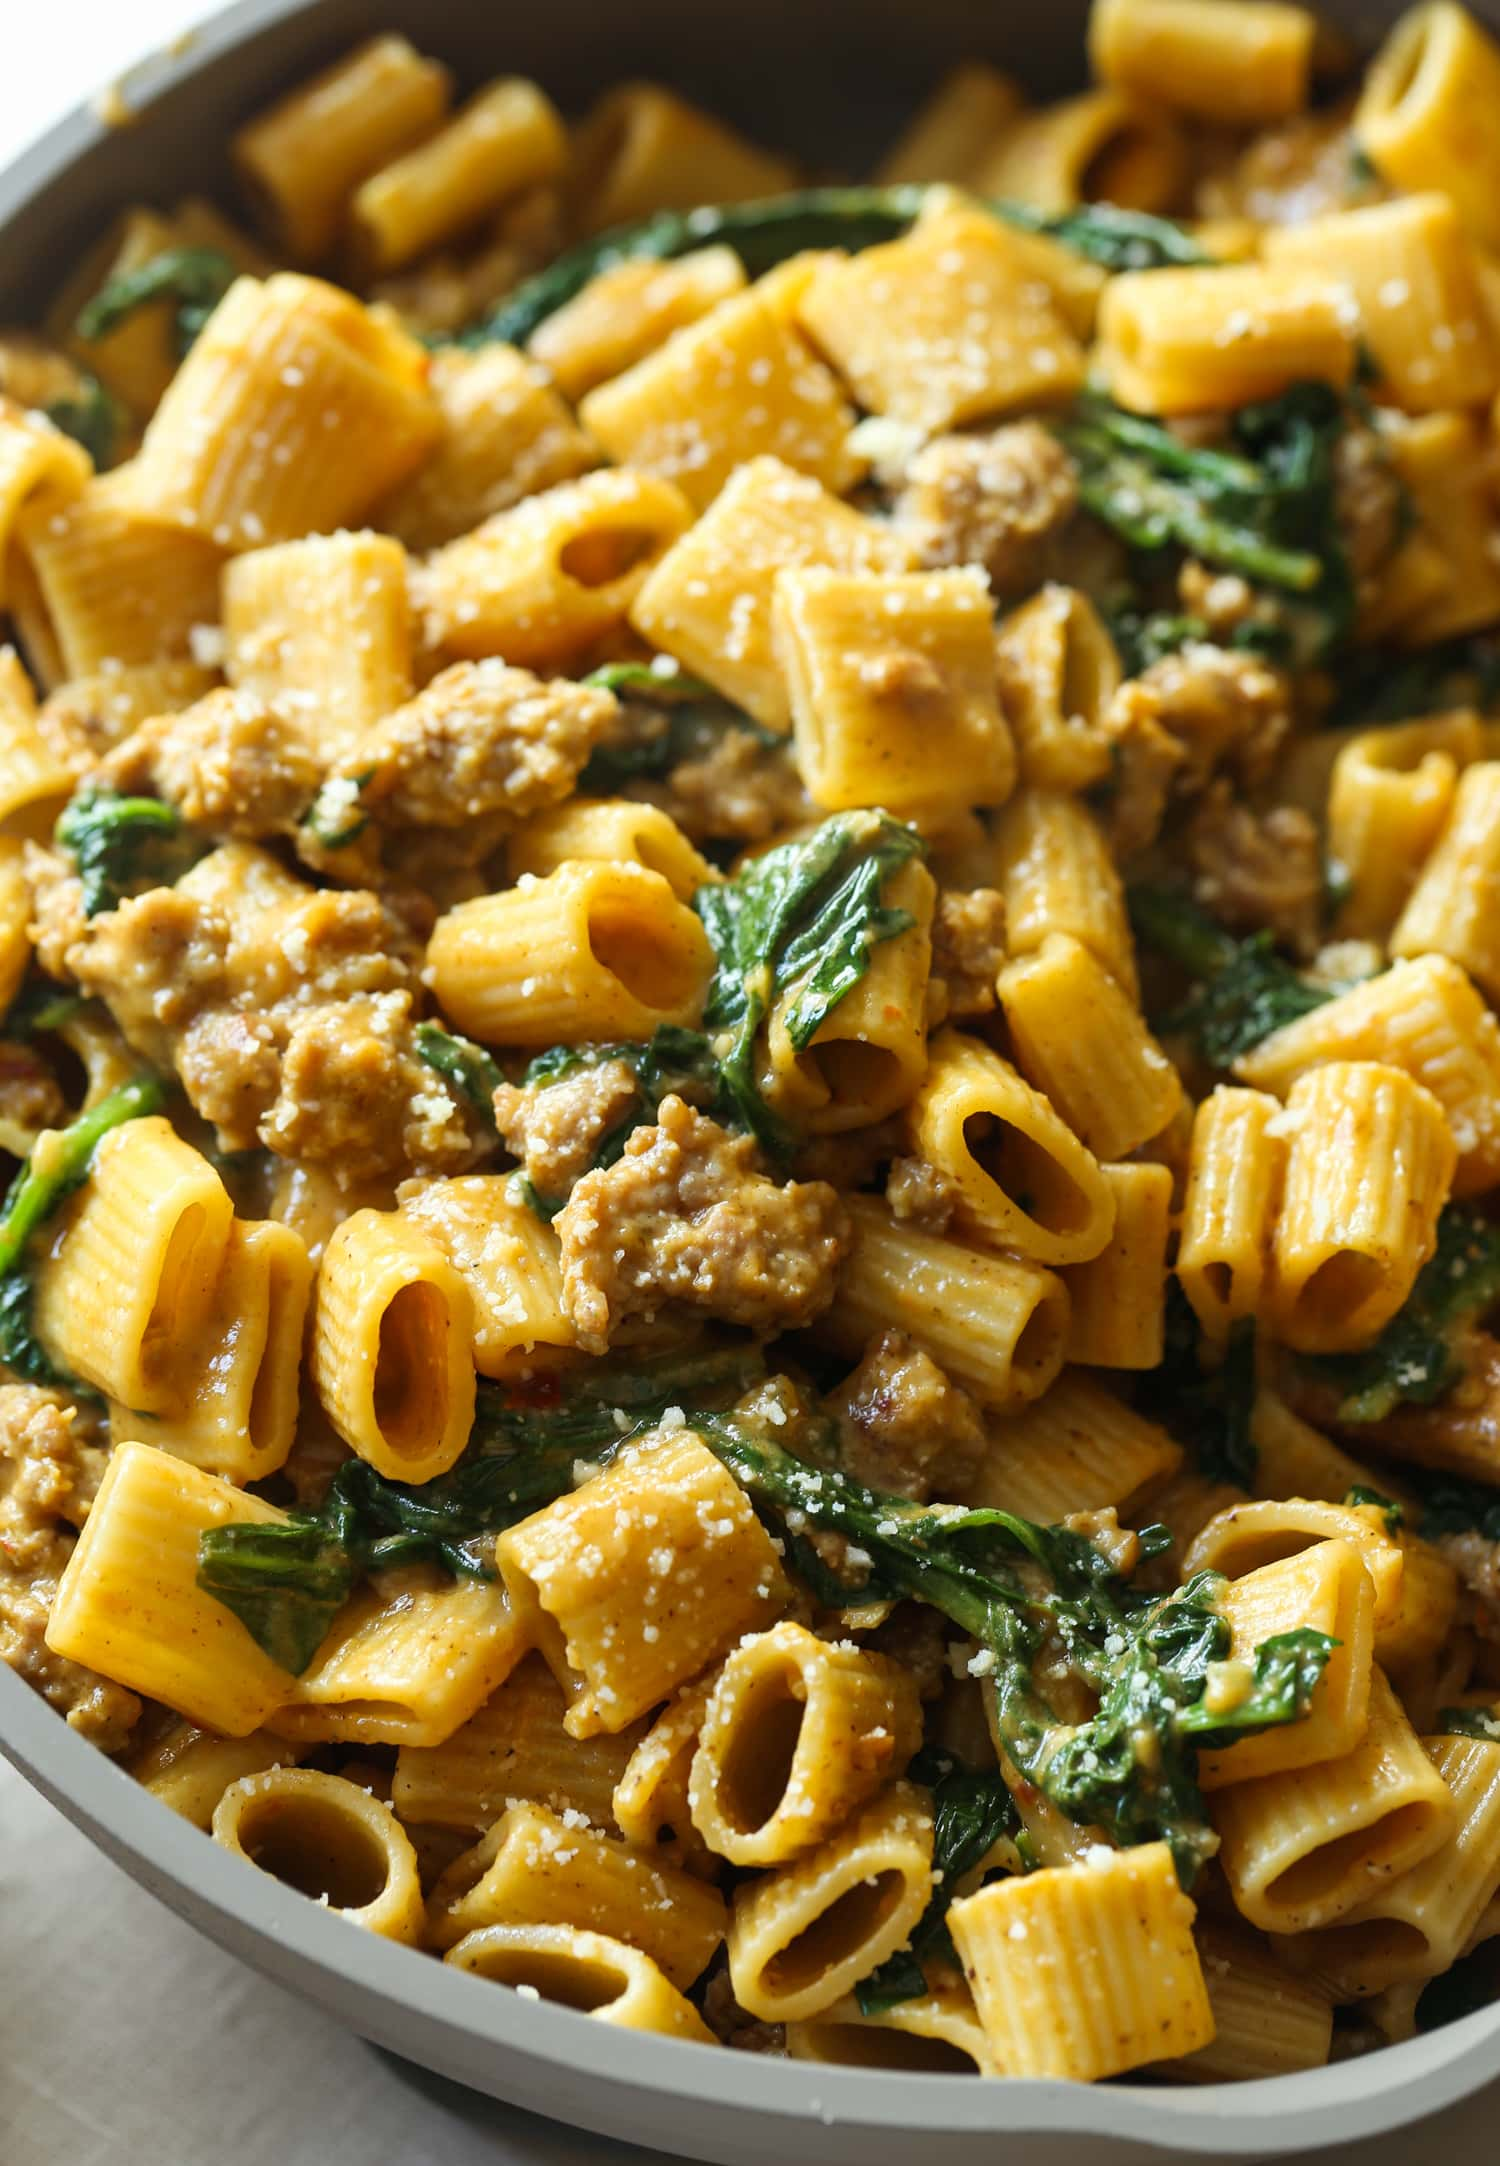 Rigatoni in a cream sauce with spinach and sausage.